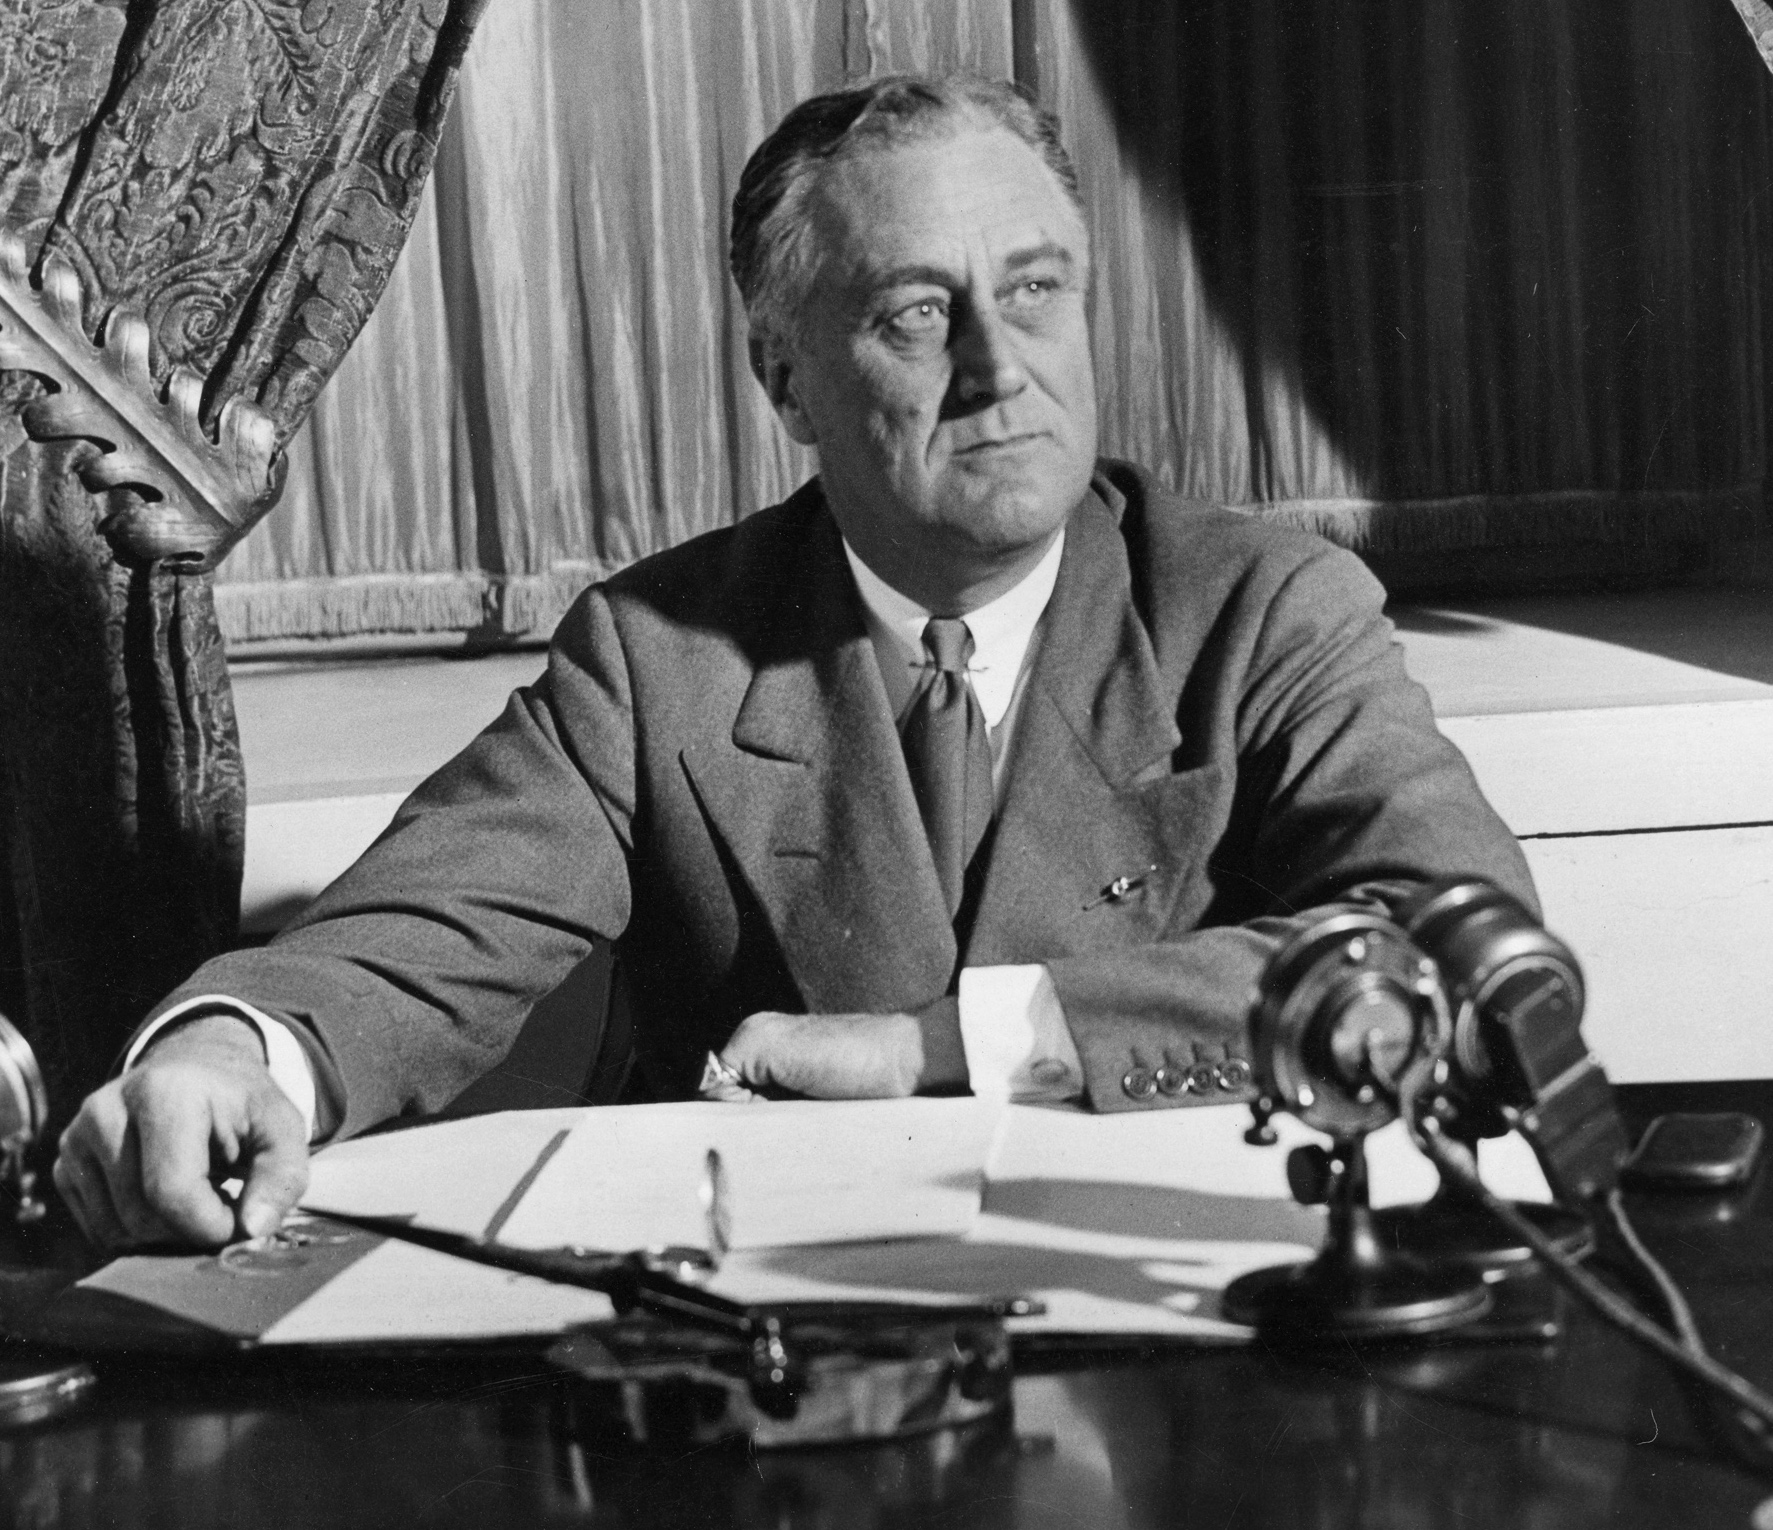 new franklin chat Explain how fdr combined the content of the new deal with the power of his  first fireside chat franklin d  fdr's fireside chats: the power of words.